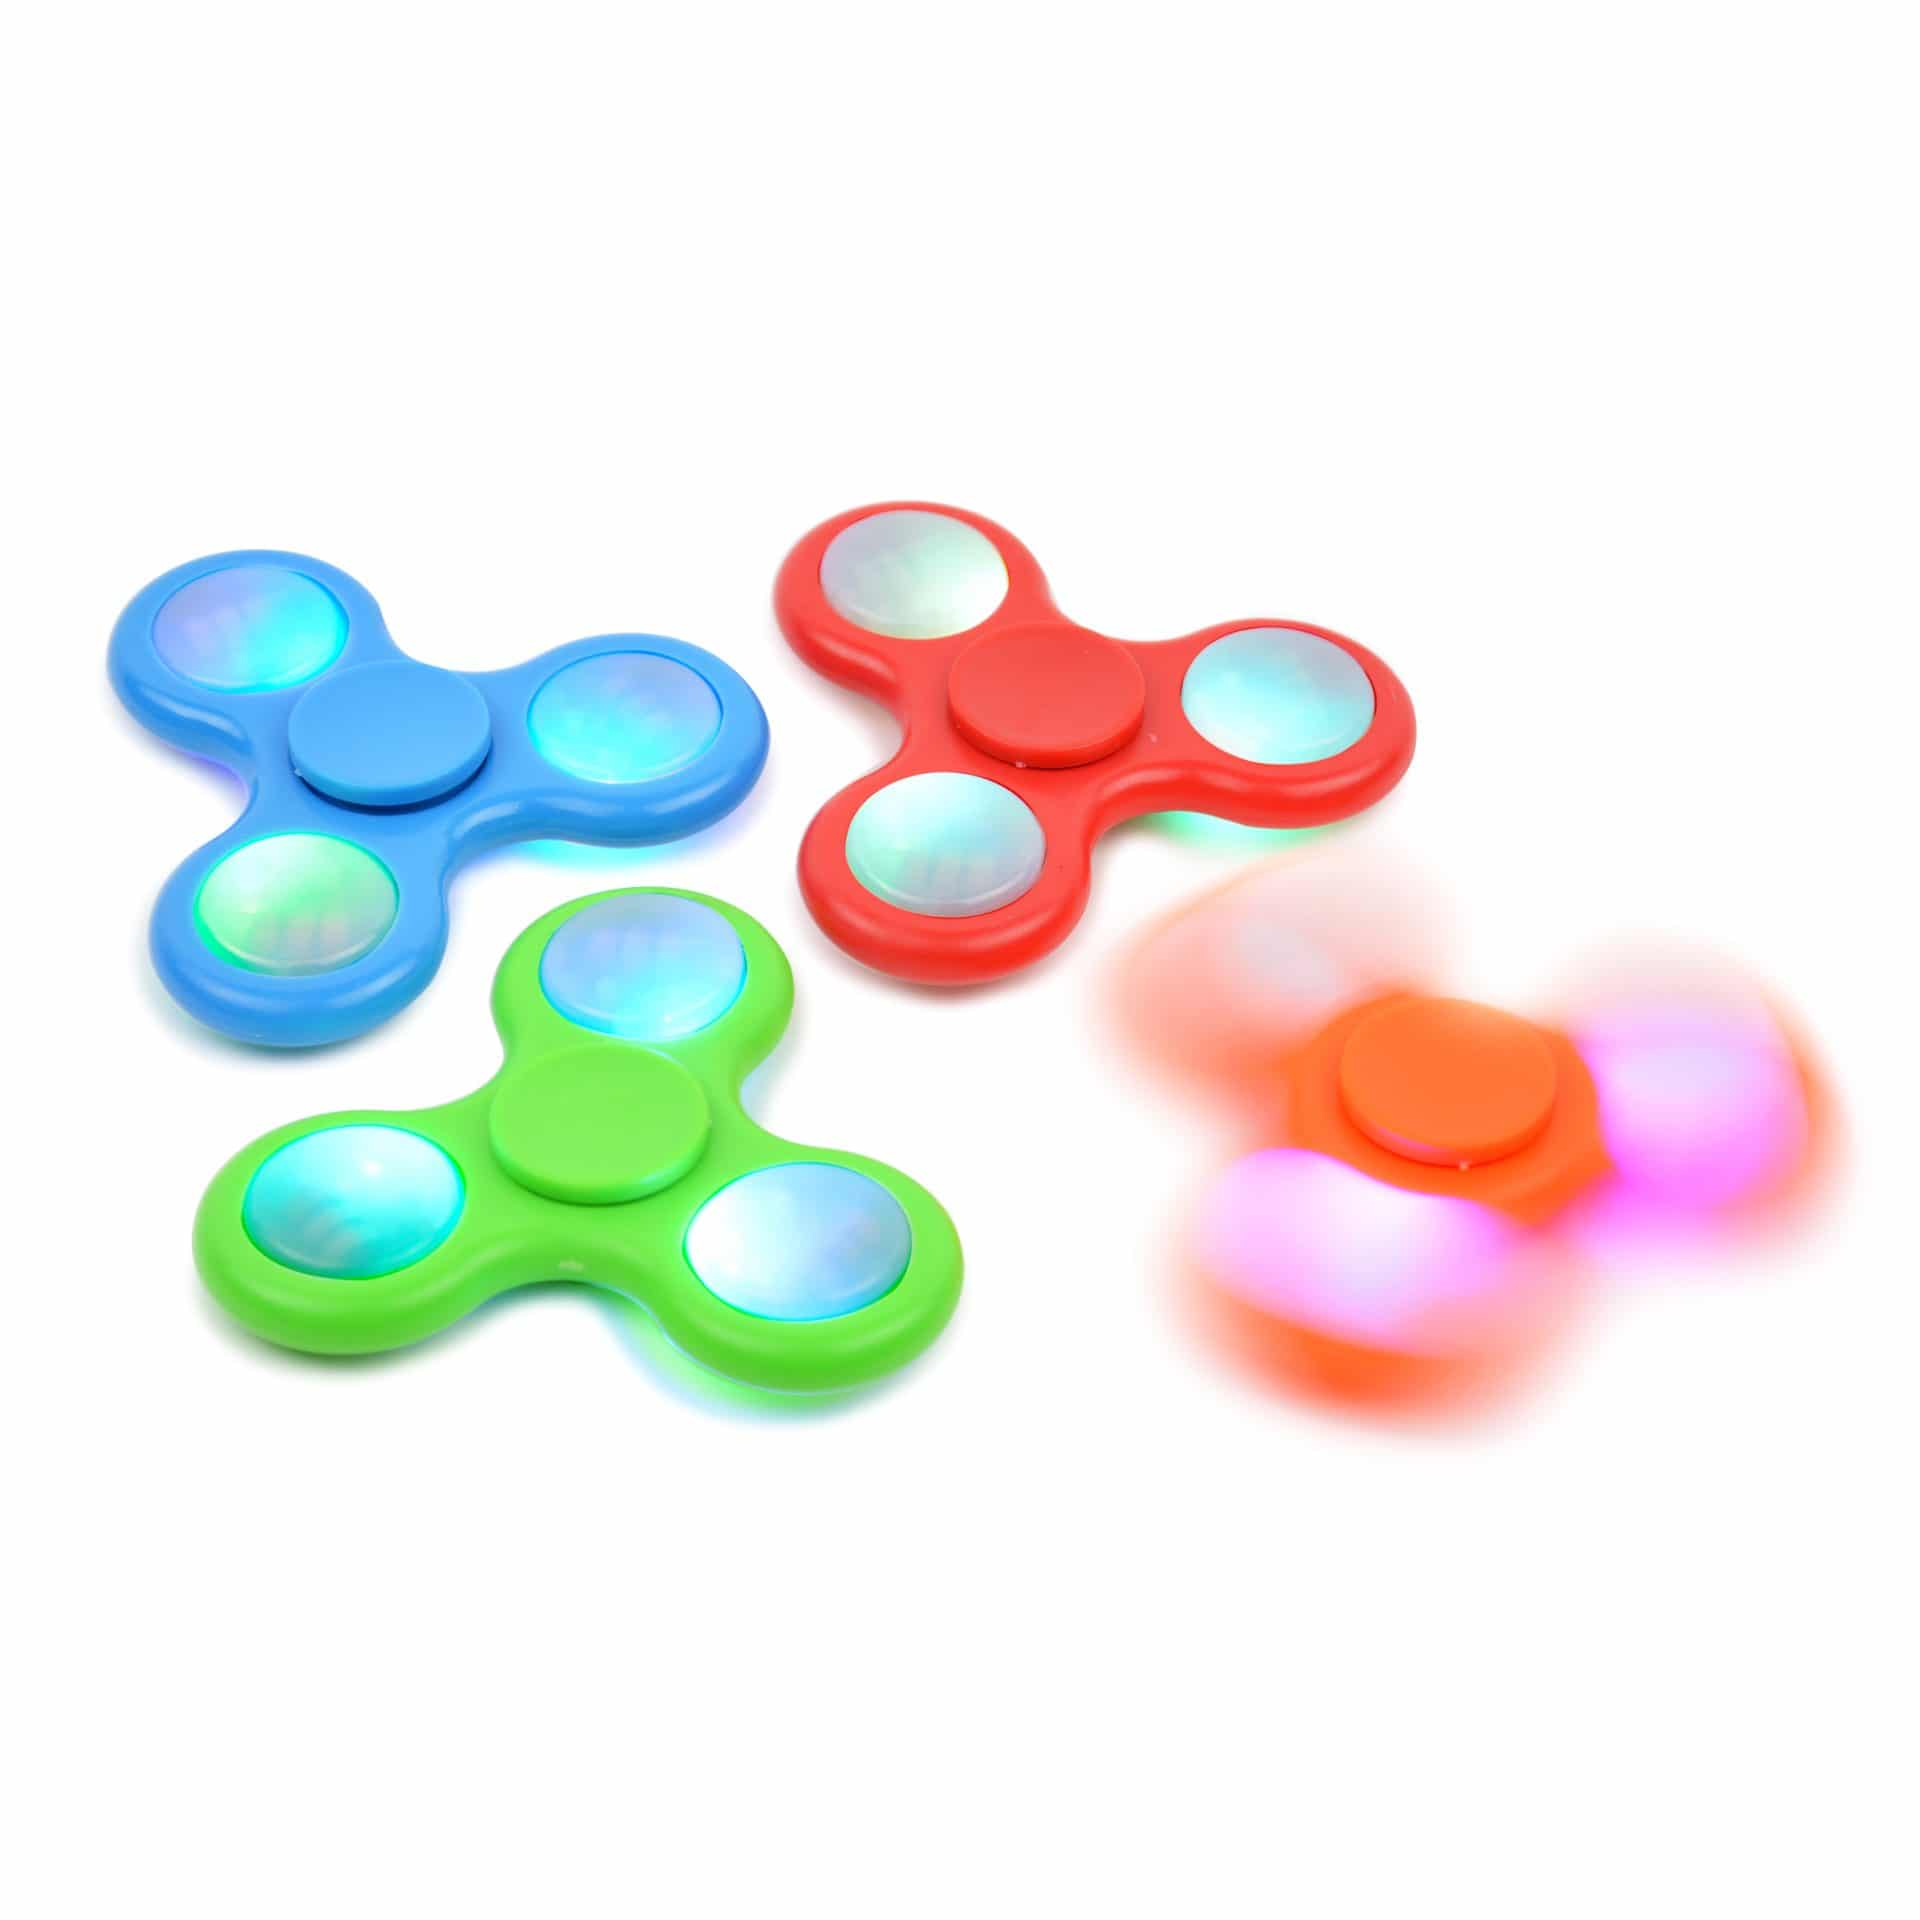 Light up spinning fidget toy